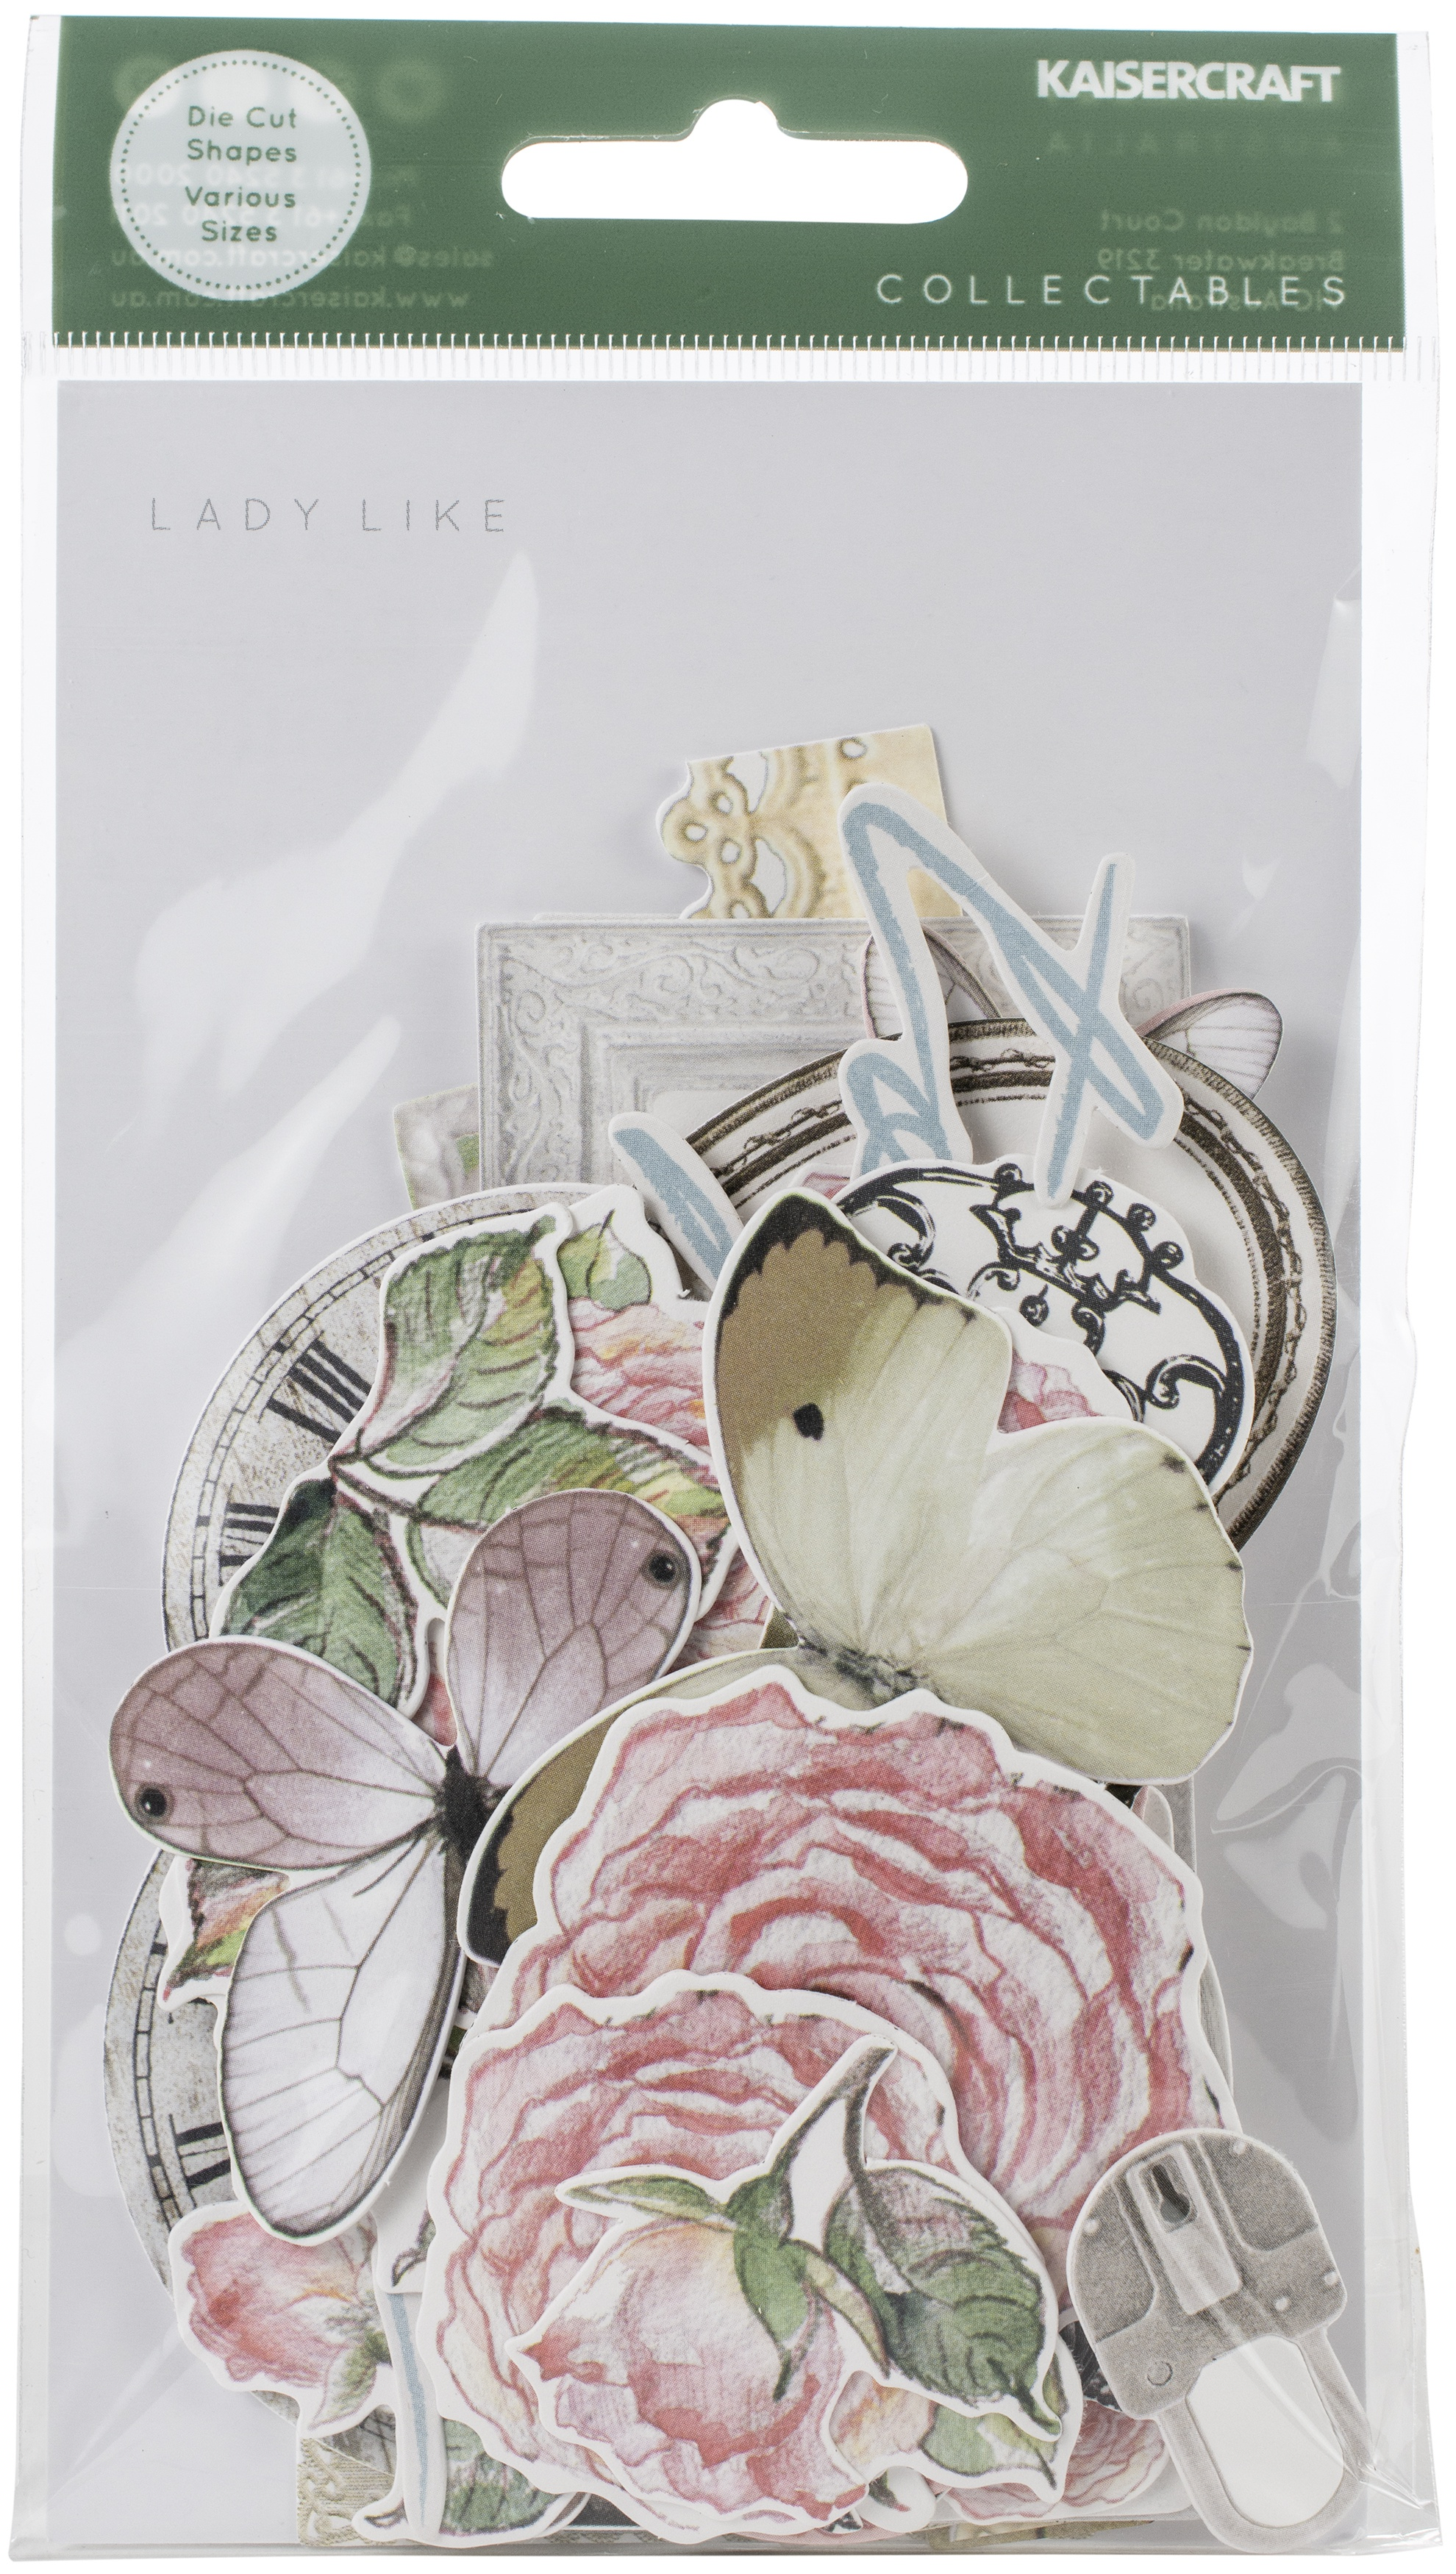 Kaisercraft Collectables Die-Cuts-Lady Like